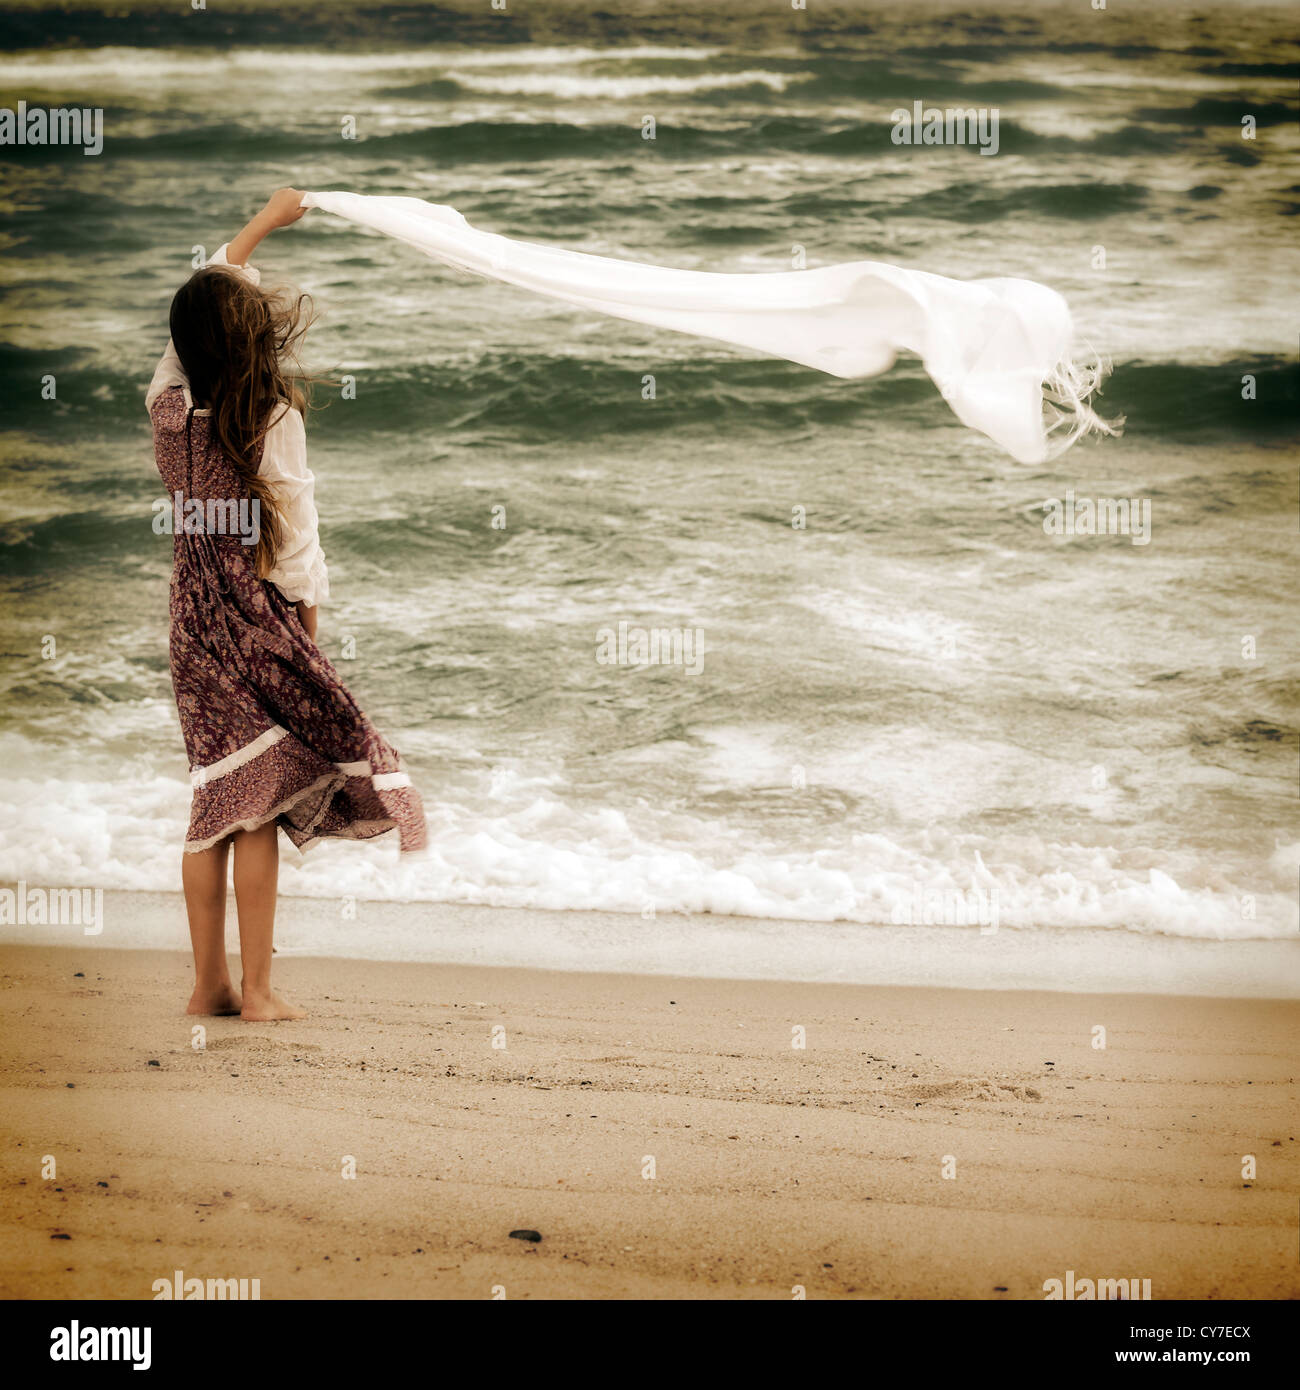 a girl standing on the beach and lets fly a scarf - Stock Image